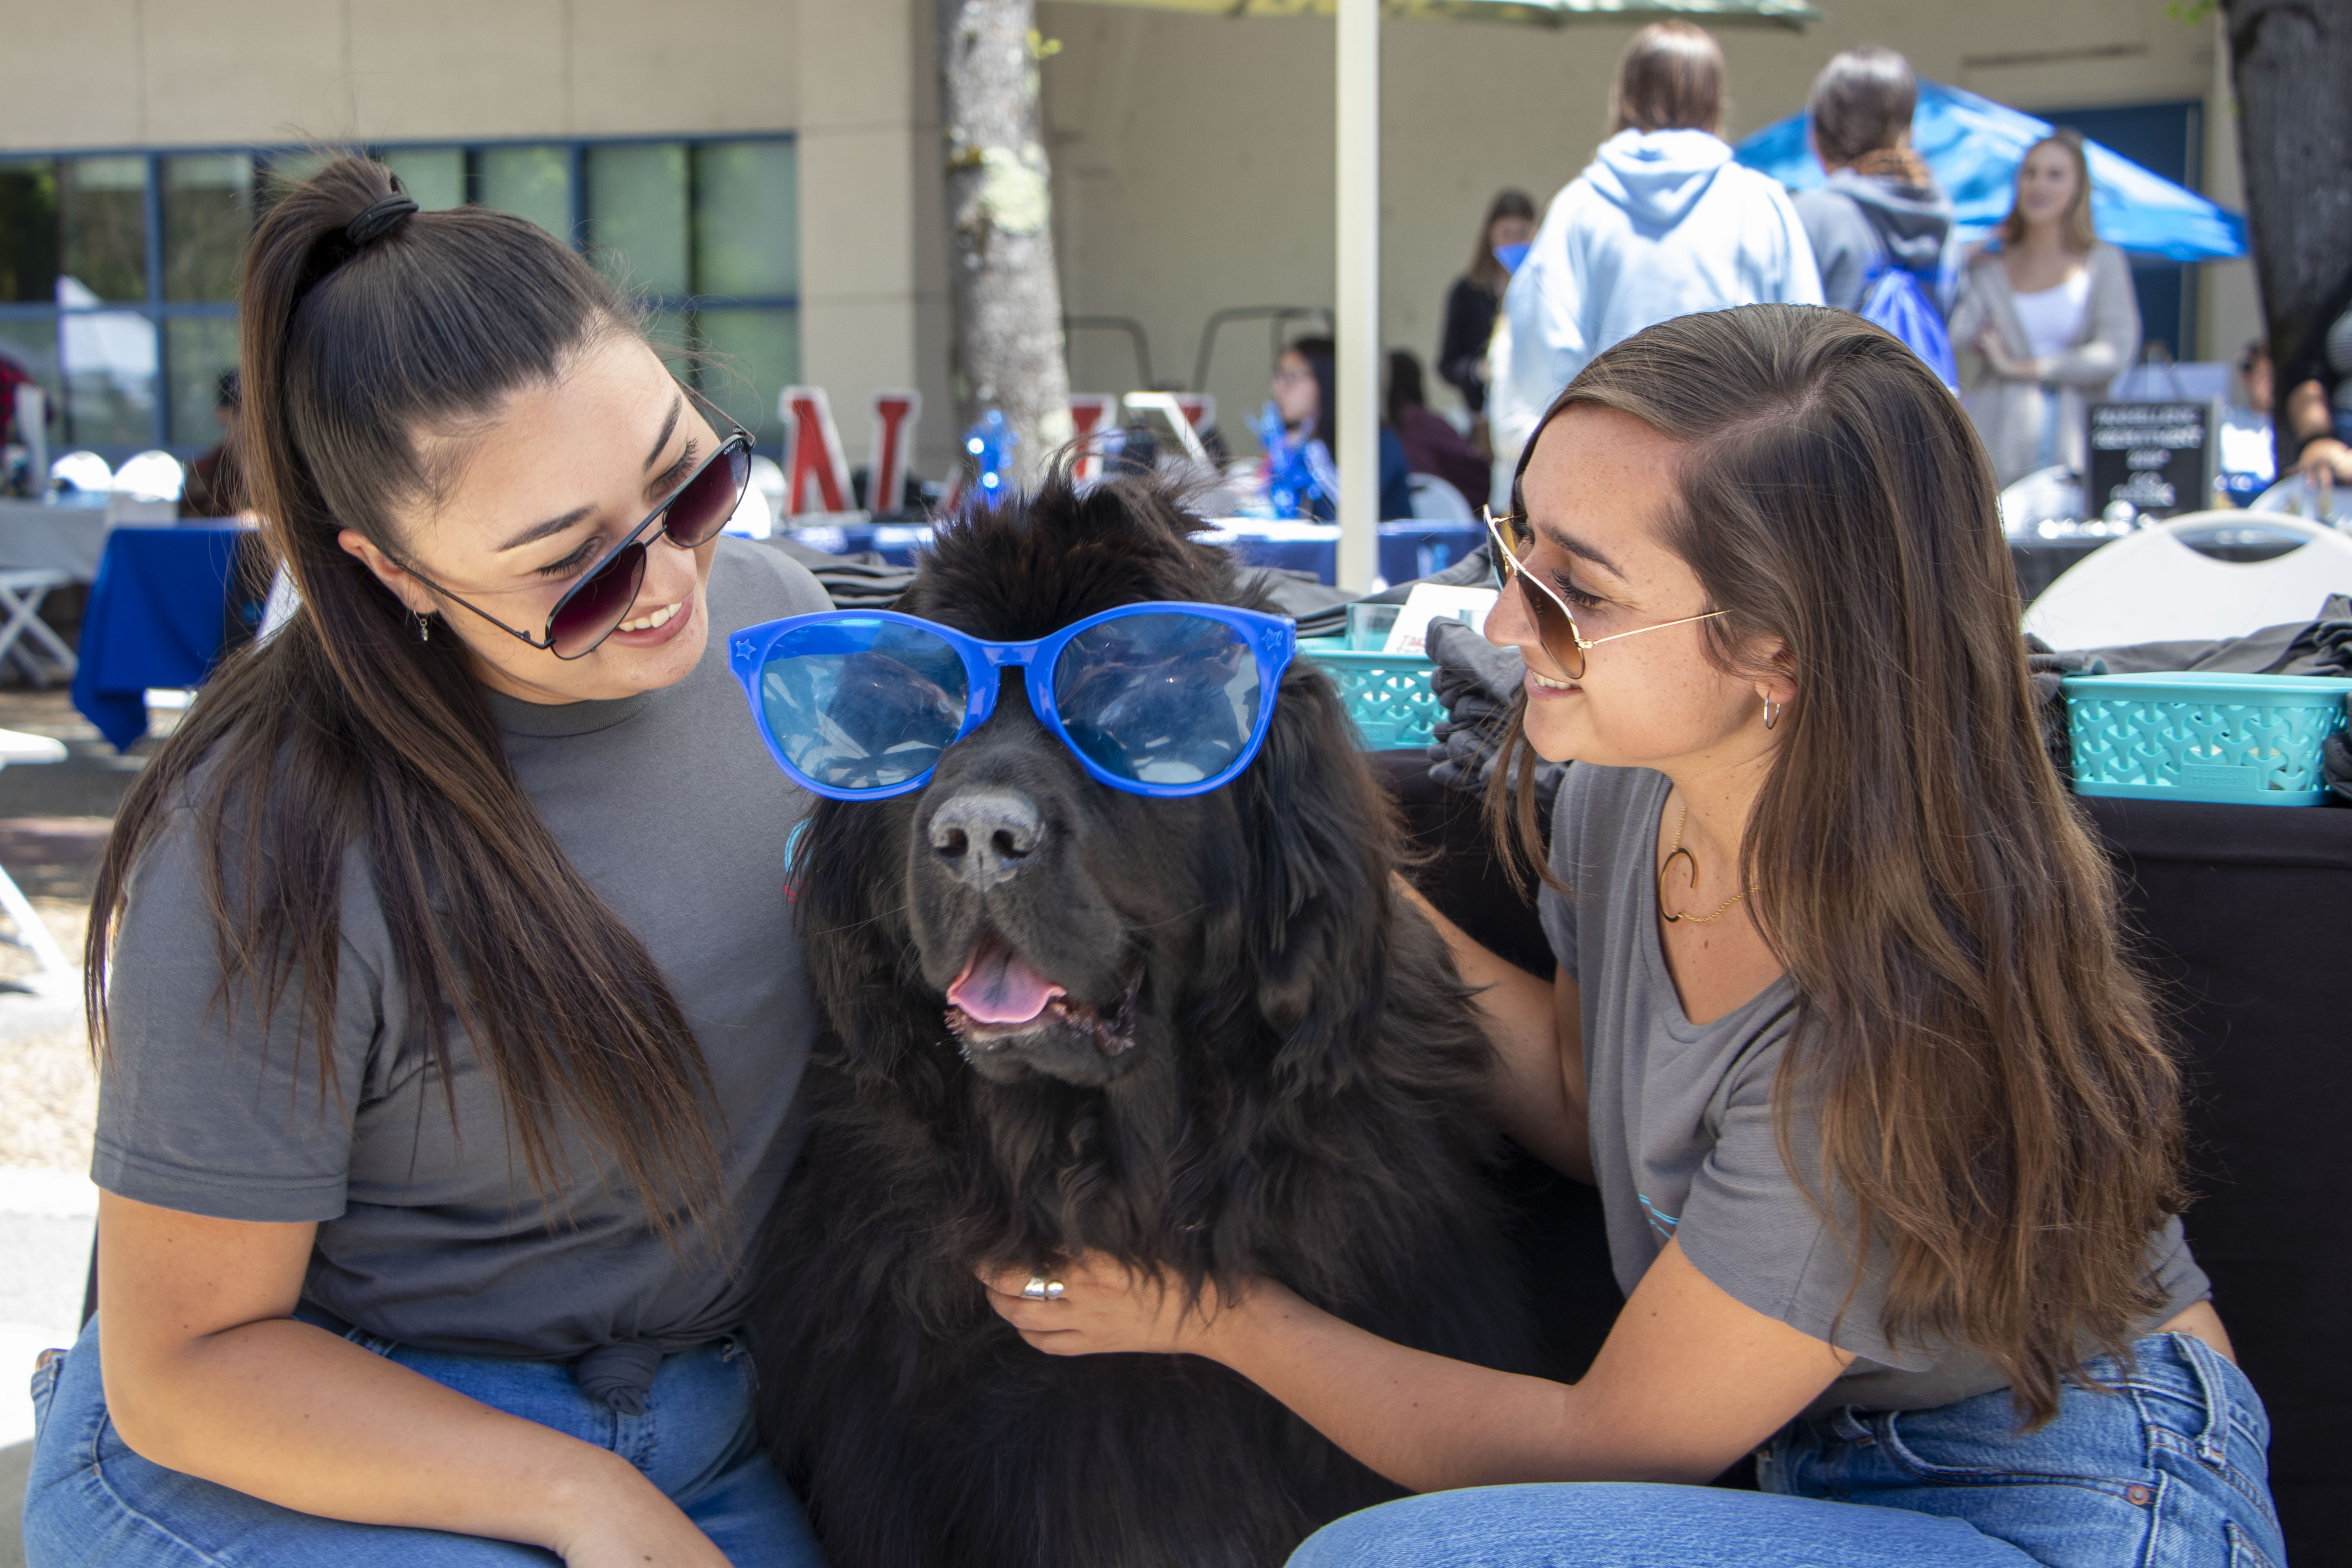 Bismarck the dog poses with two students